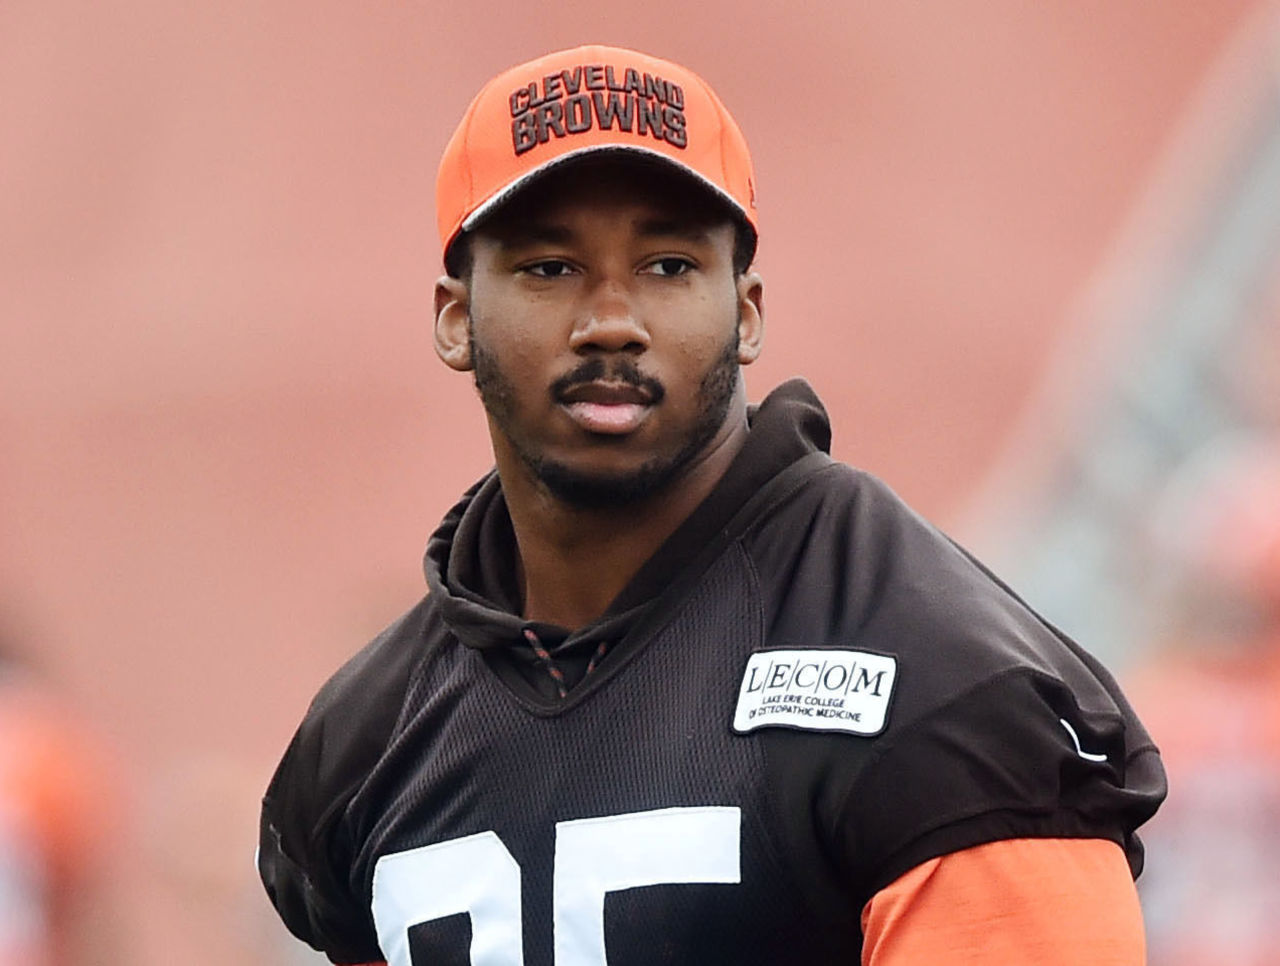 Myles Garrett cites desire to be father as reason for reporting concussion